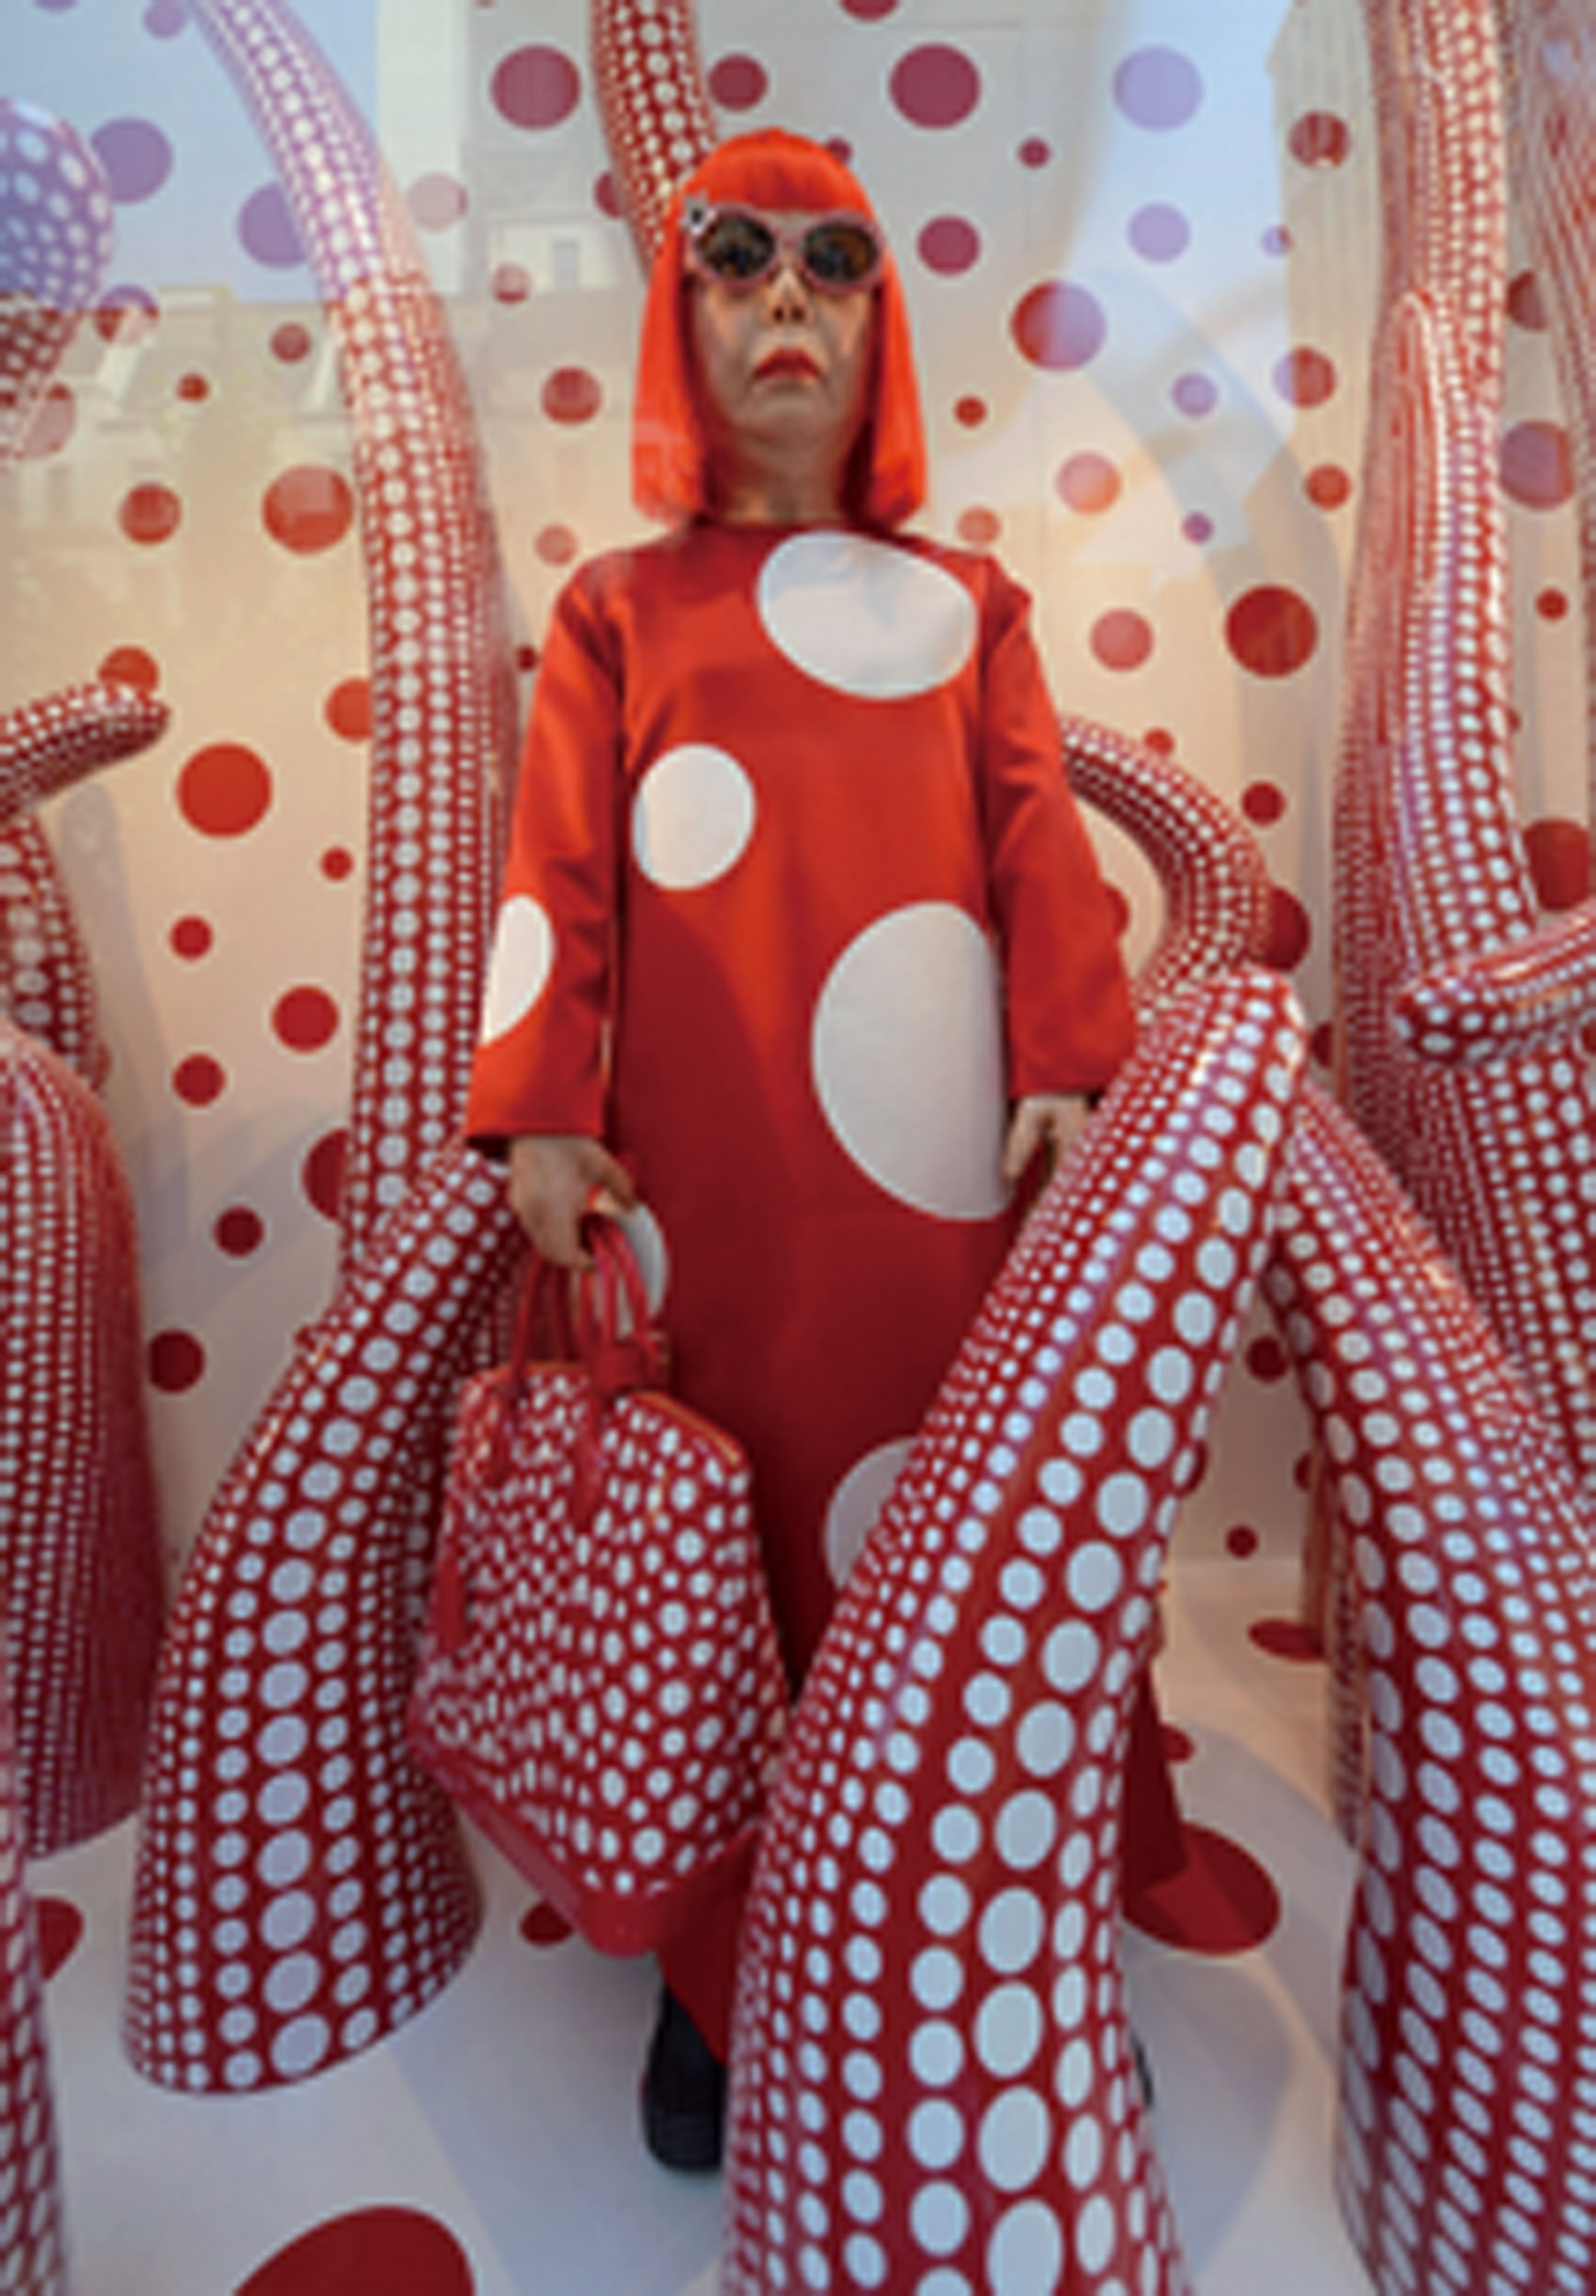 NEW YORK, NY - JULY 10: A wax figure of artist Yayoi Kusama on display during the Louis Vuitton And Yayoi Kusama Collaboration Unveiling at Louis Vuitton Maison on July 10, 2012 in New York City. (Photo by Dimitrios Kambouris/WireImage)